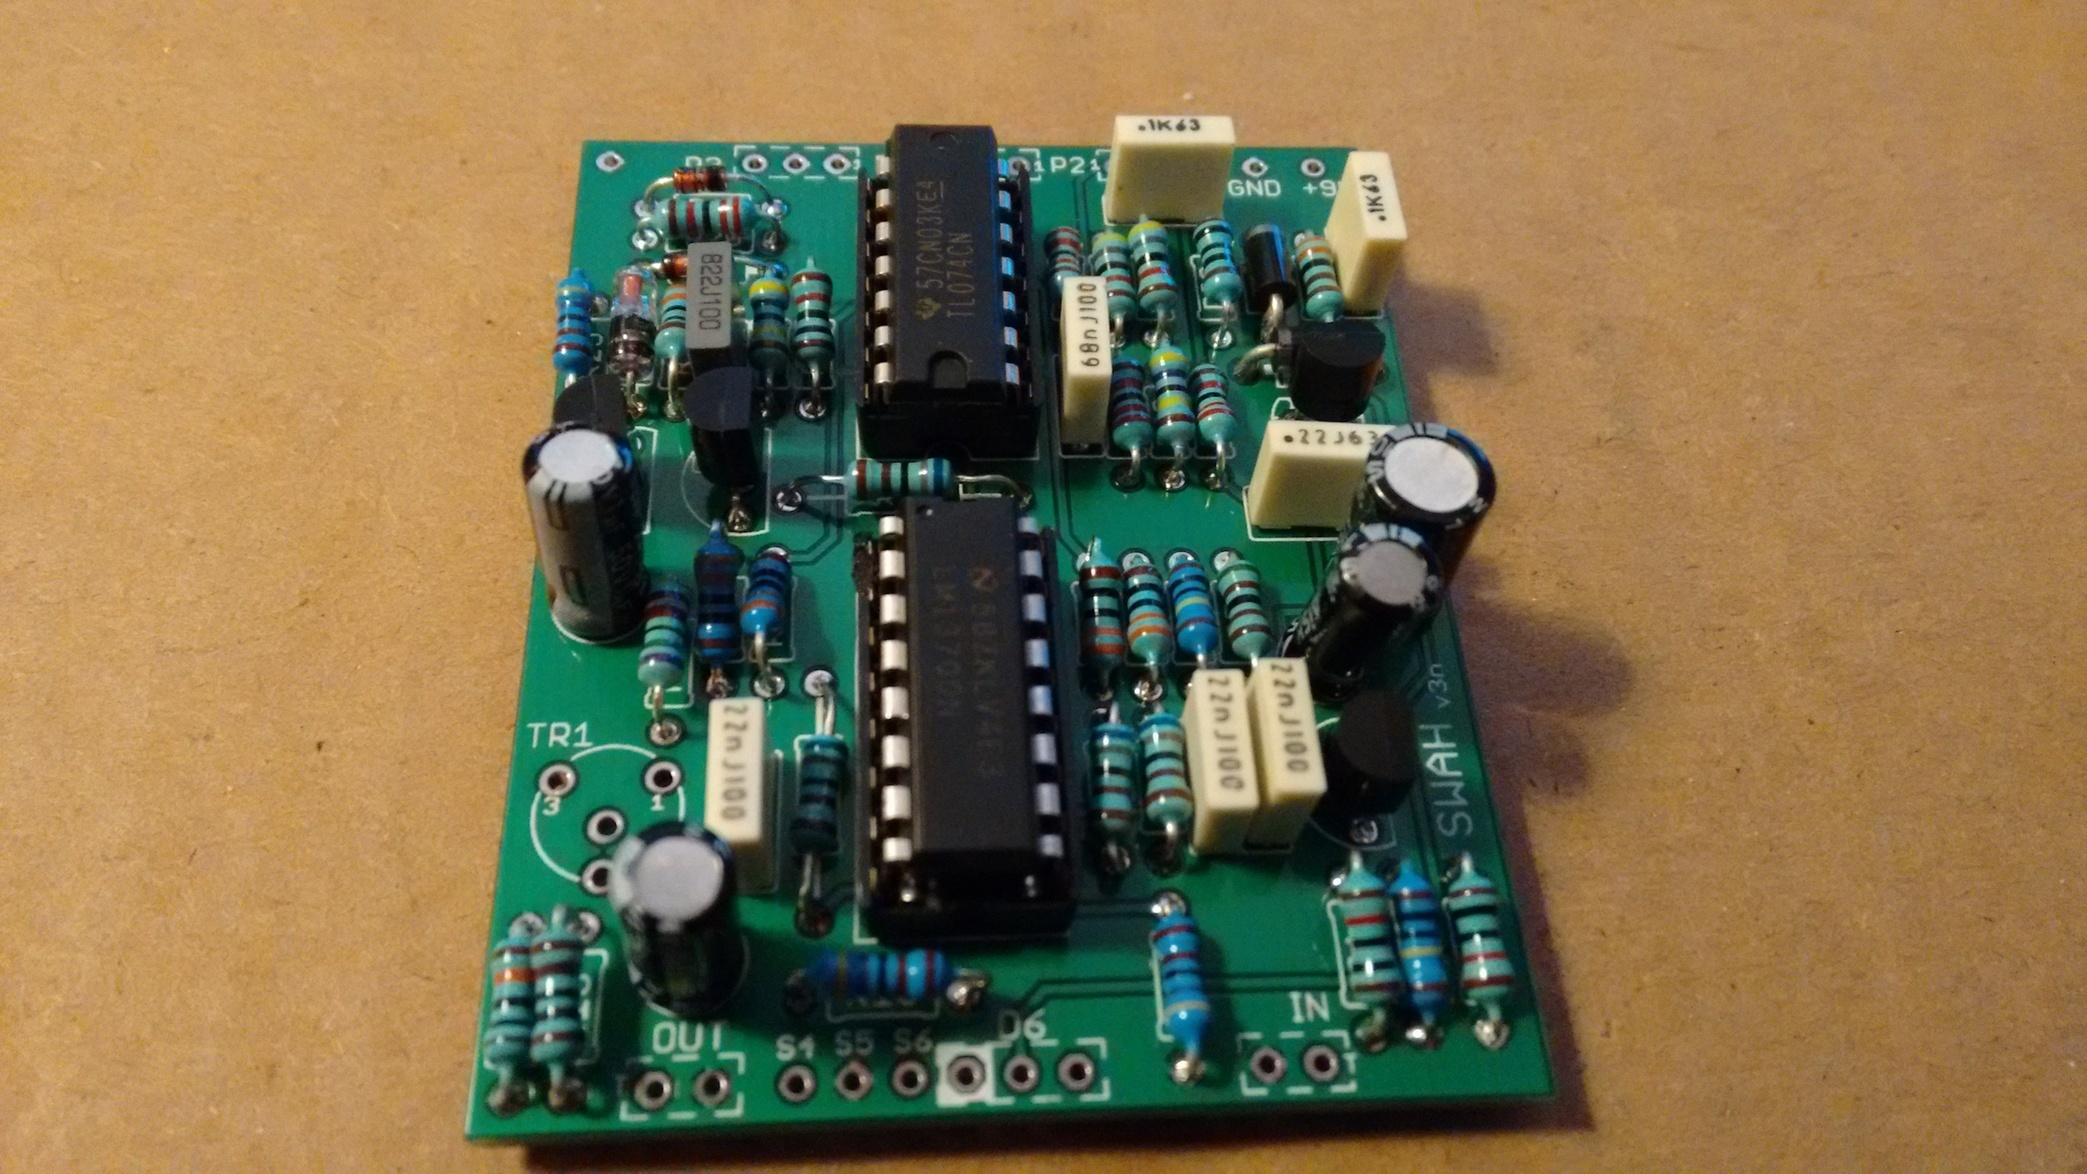 Building My Own Effect Pedals For Guitar Bass Science Re Vero Wah Circuit Img 20160420 1153271822087x1174 692 Kb